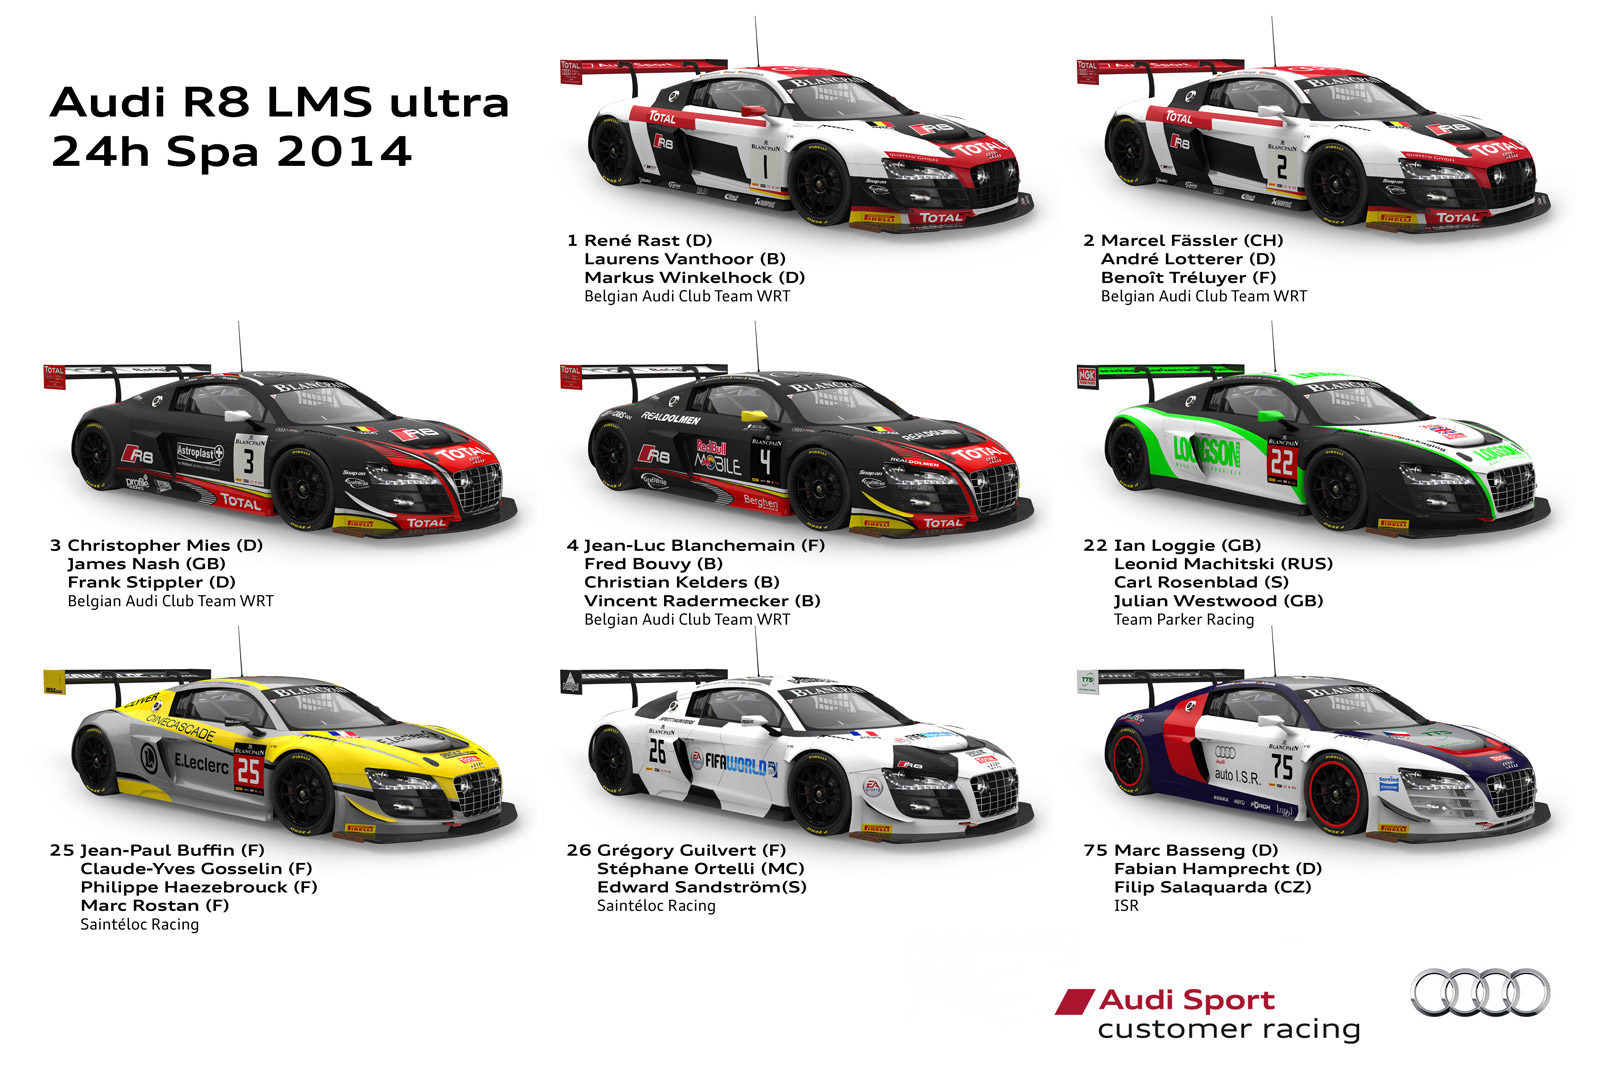 eight audi r8 lms ultra race cars to tackle 2014 spa 24 hours. Black Bedroom Furniture Sets. Home Design Ideas